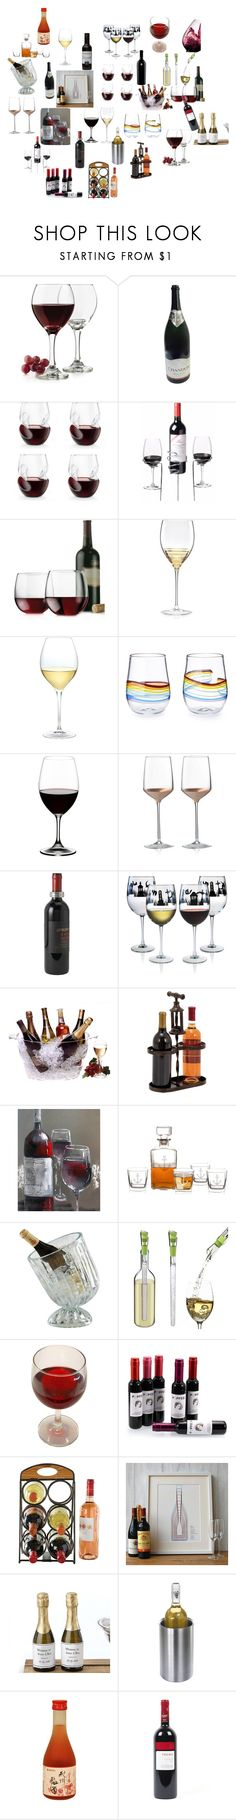 """""""wine"""" by cupcakekisss on Polyvore featuring interior, interiors, interior design, home, home decor, interior decorating, Libbey, Kate Spade, Nordstrom and Riedel"""